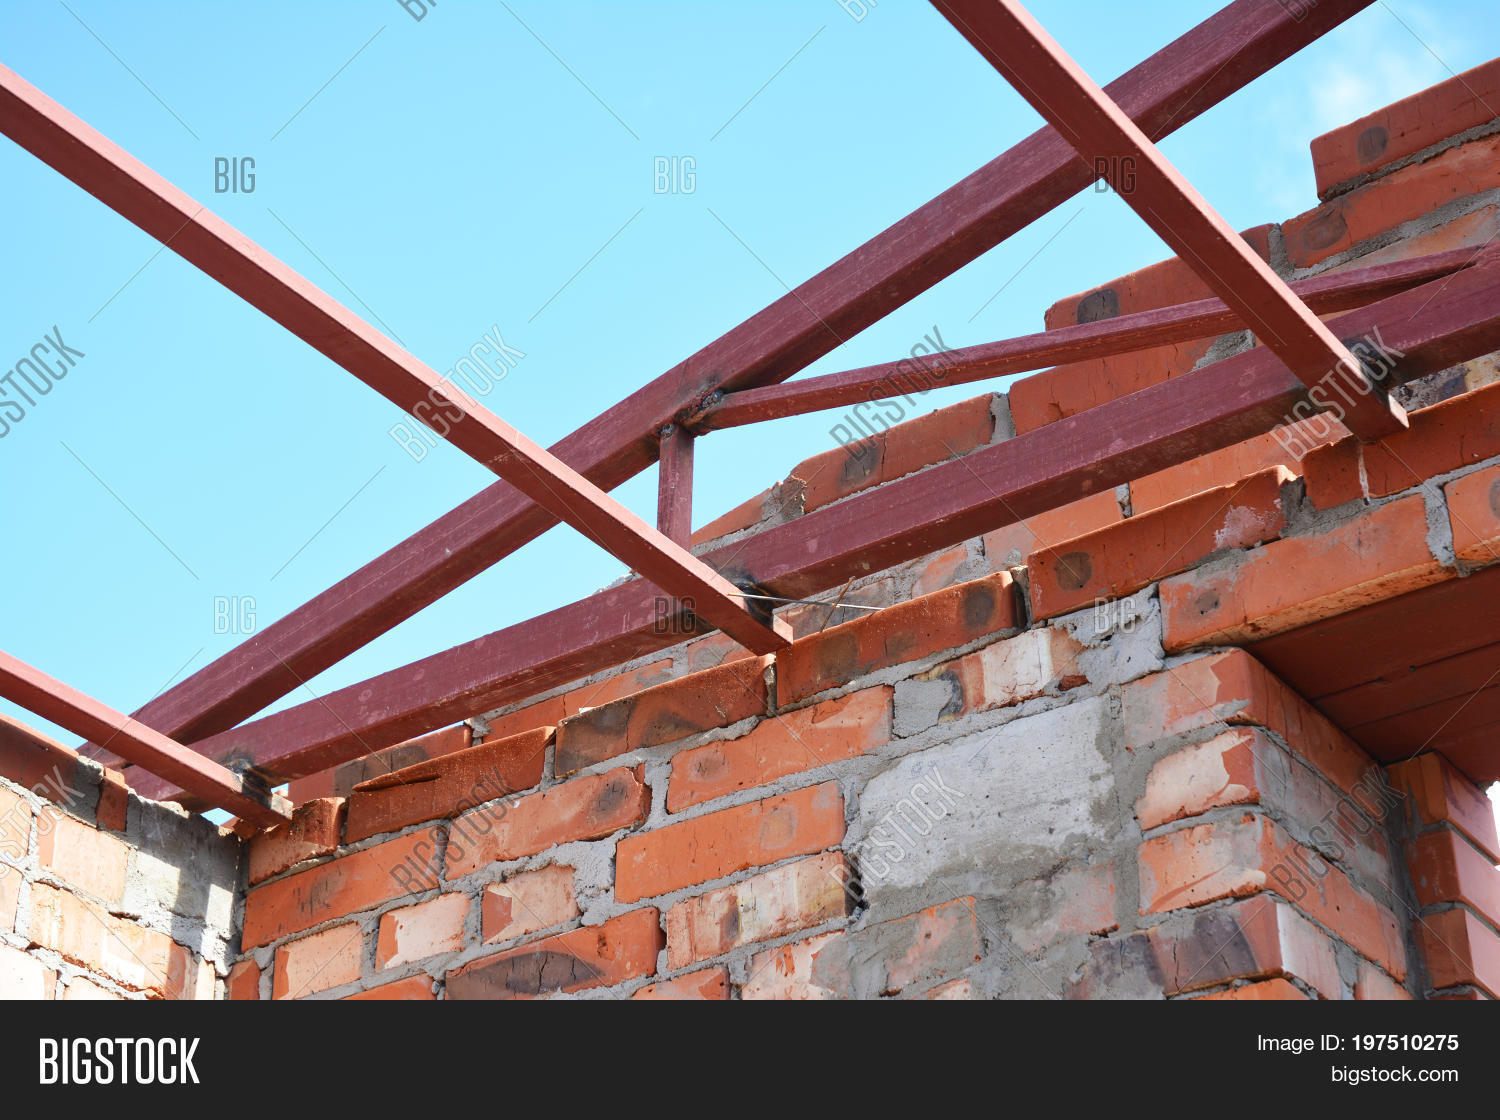 Steel Roof Trusses Image Photo Free Trial Bigstock